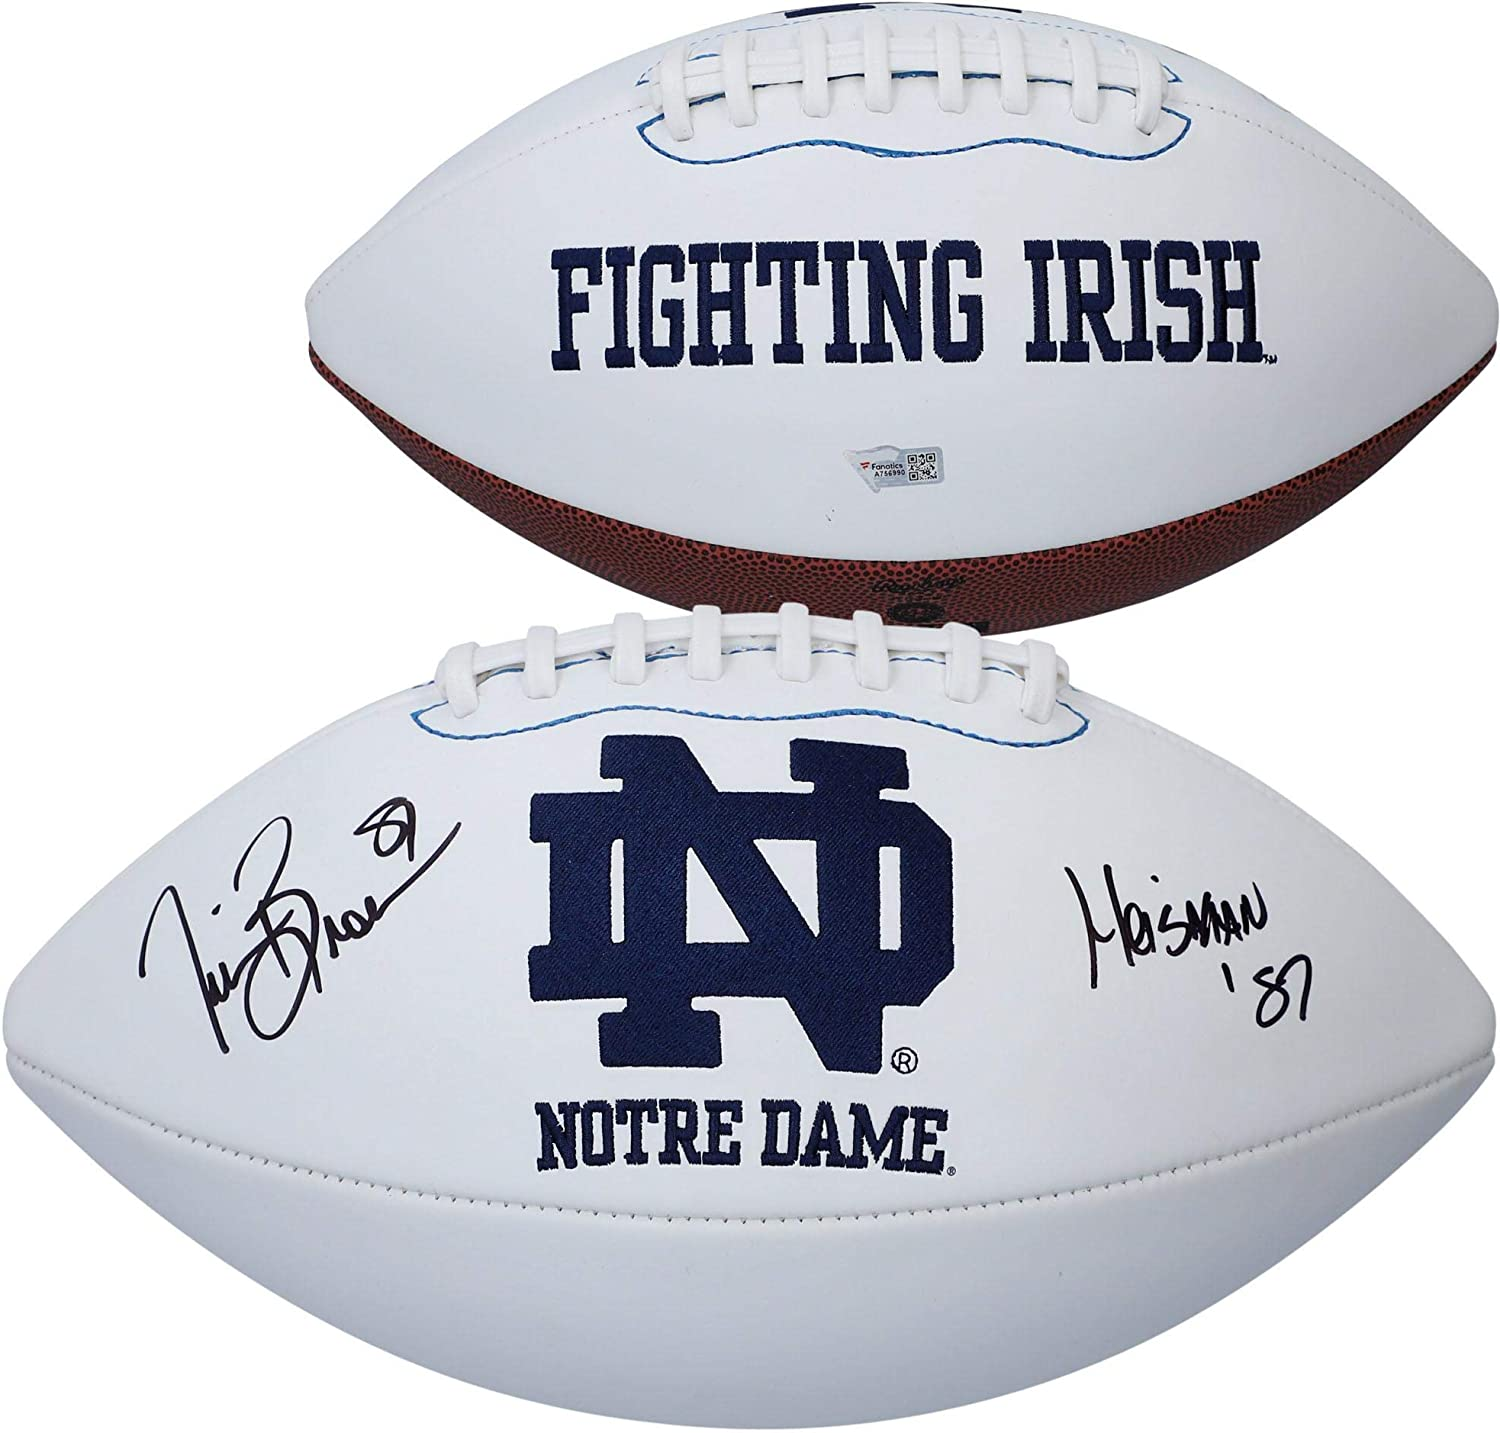 Autographed College Footballs Tim Brown Notre Dame Fighting Irish Autographed White Panel Football withHeisman 87 Inscription